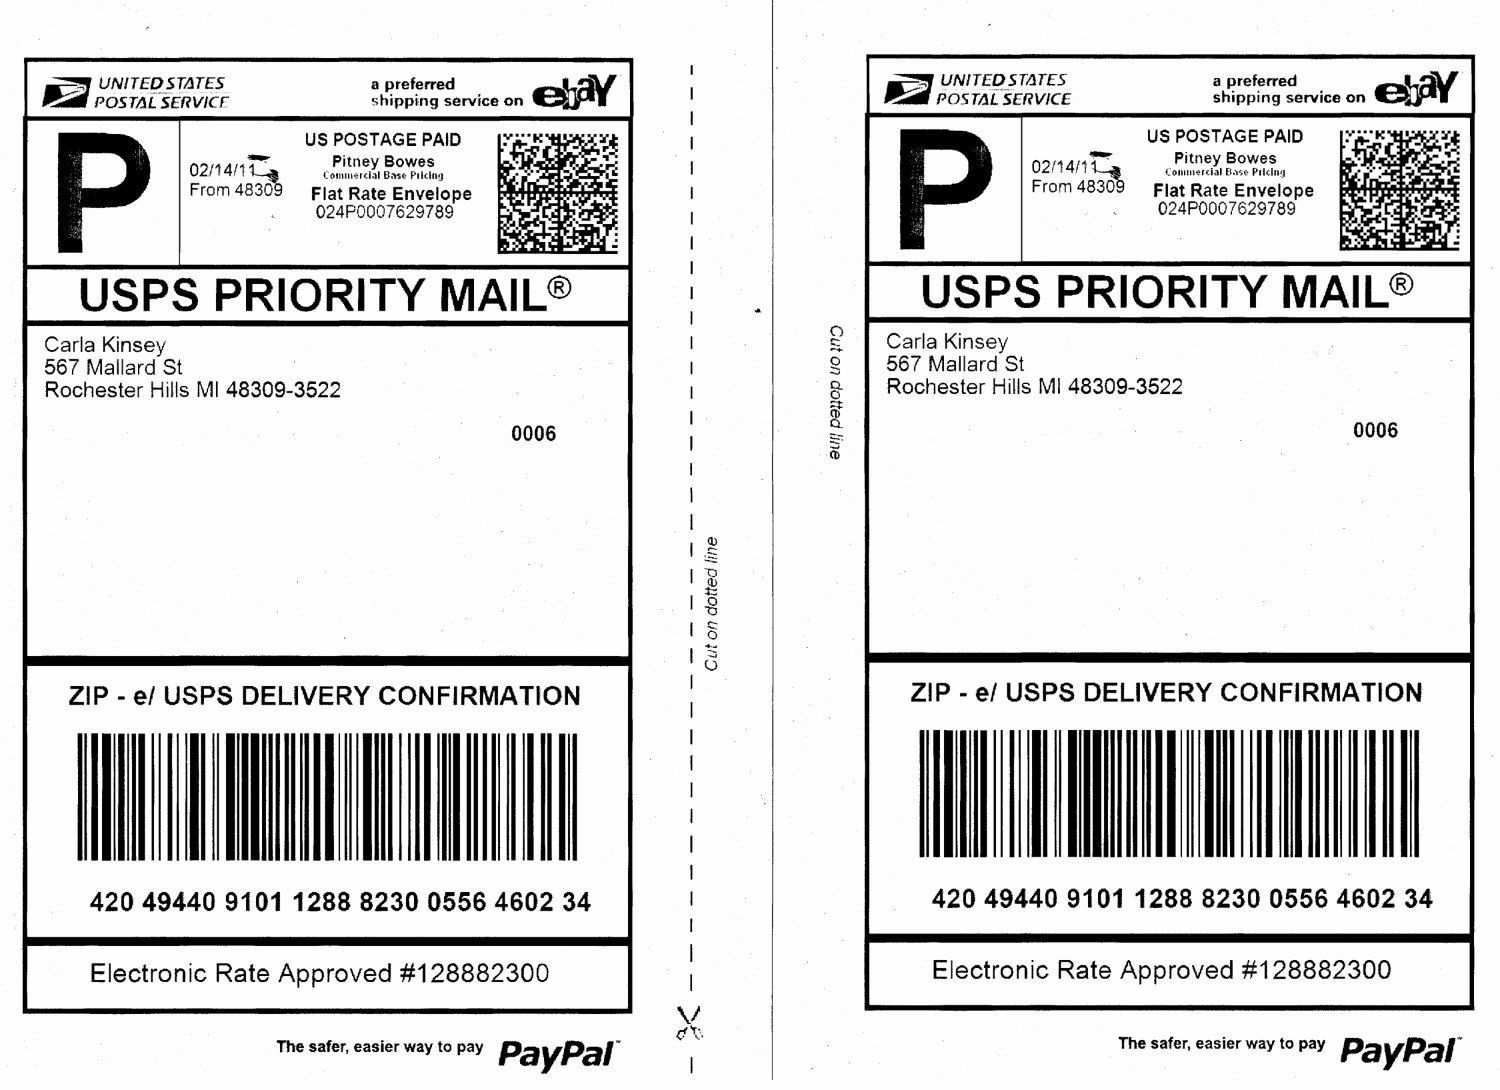 001 Staggering Shipping Label Template Free Word Photo Full